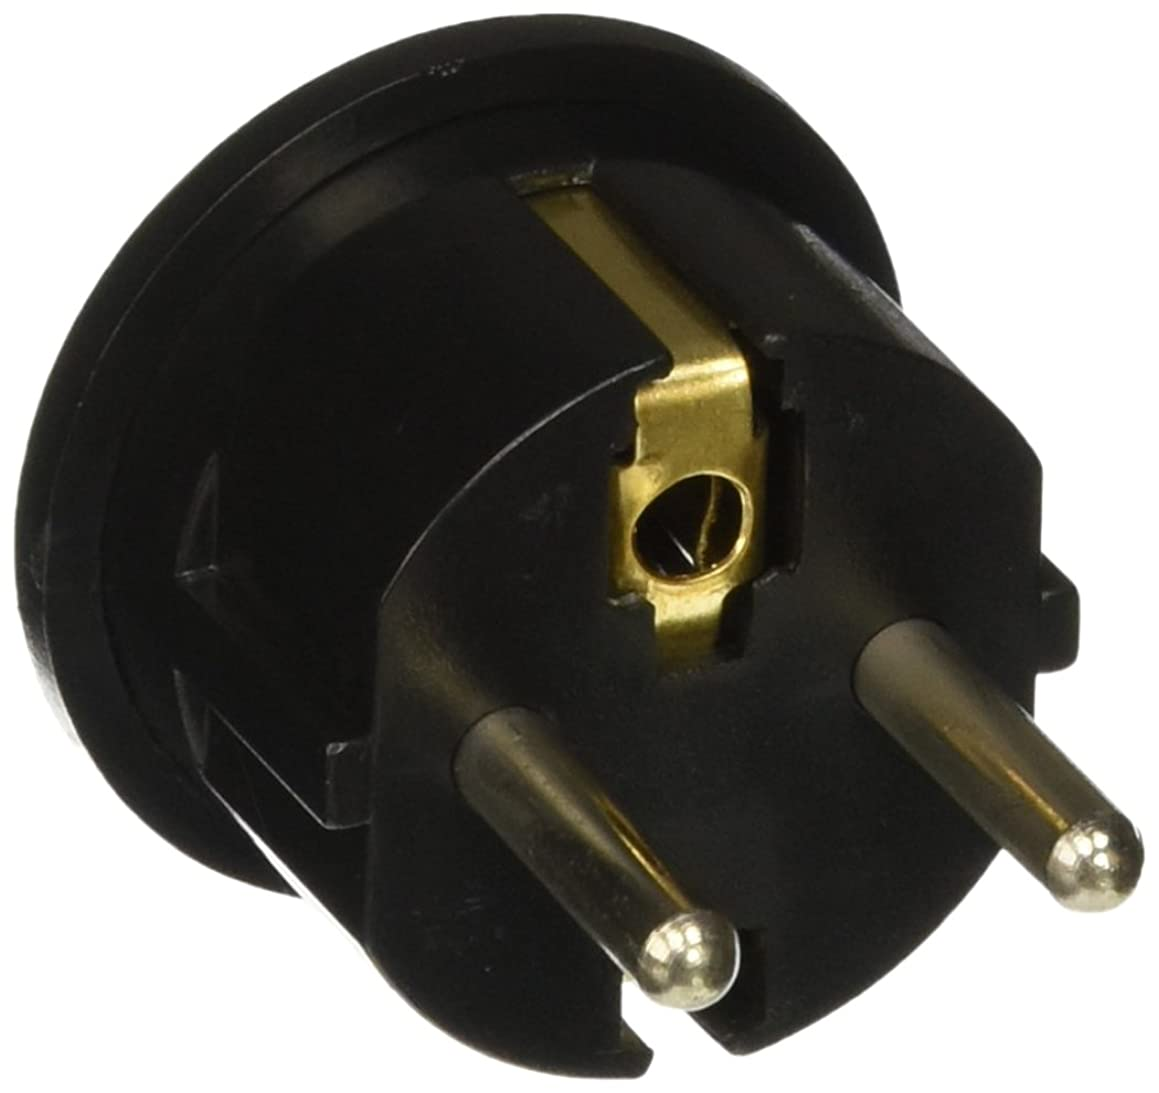 CKITZE BA-4 Grounded European German Schuko Power Plug Adapter Adaptor - American USA to German, France, Russia & more - Excellent Quality?, Black or White